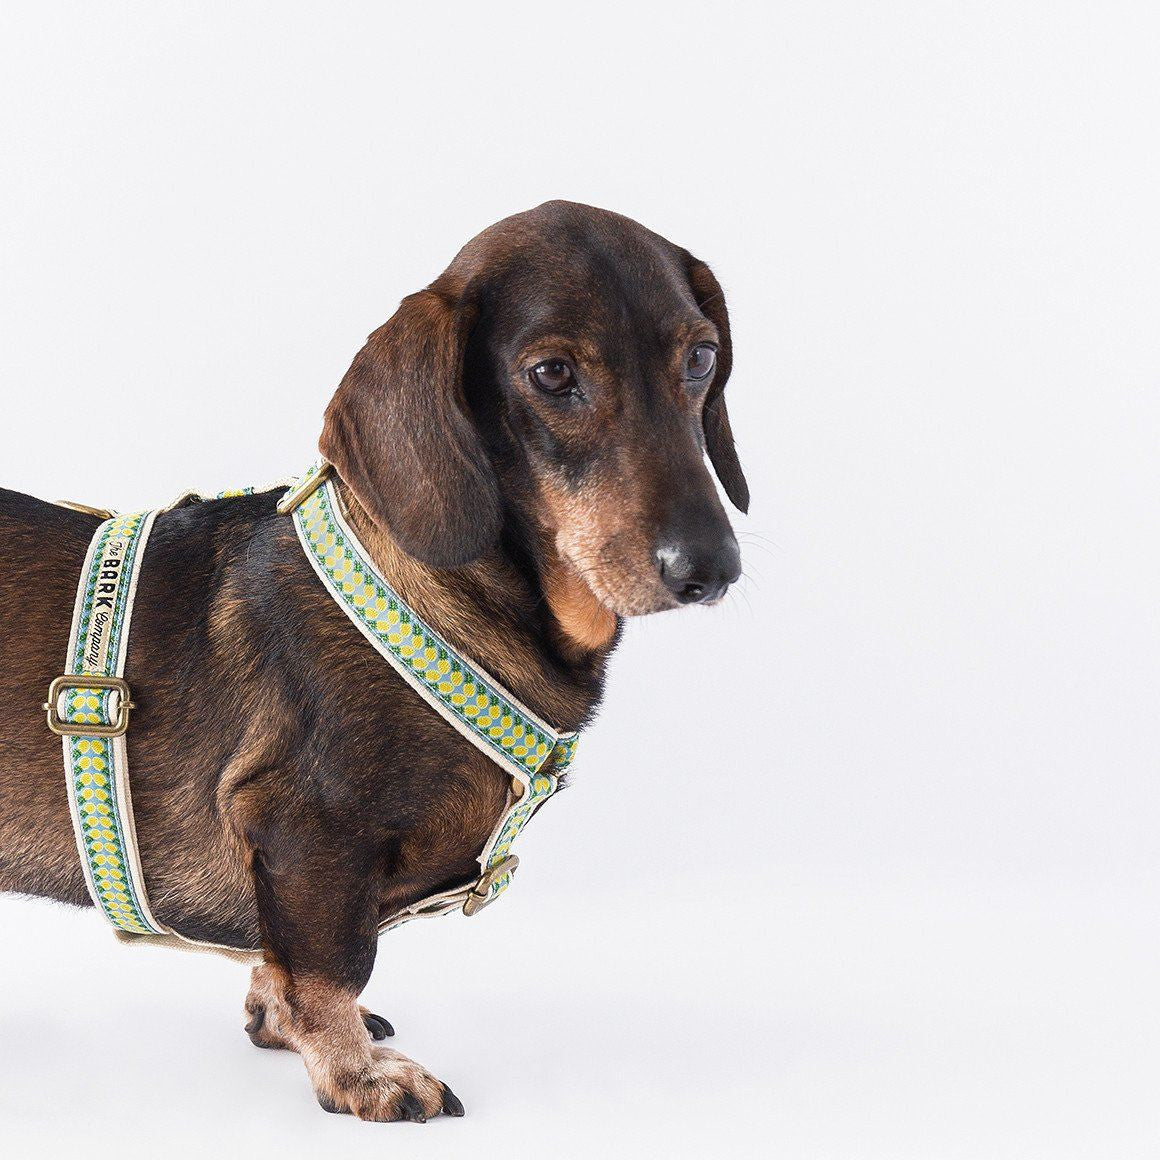 Pineapple dog harness from The Bark Co - 1